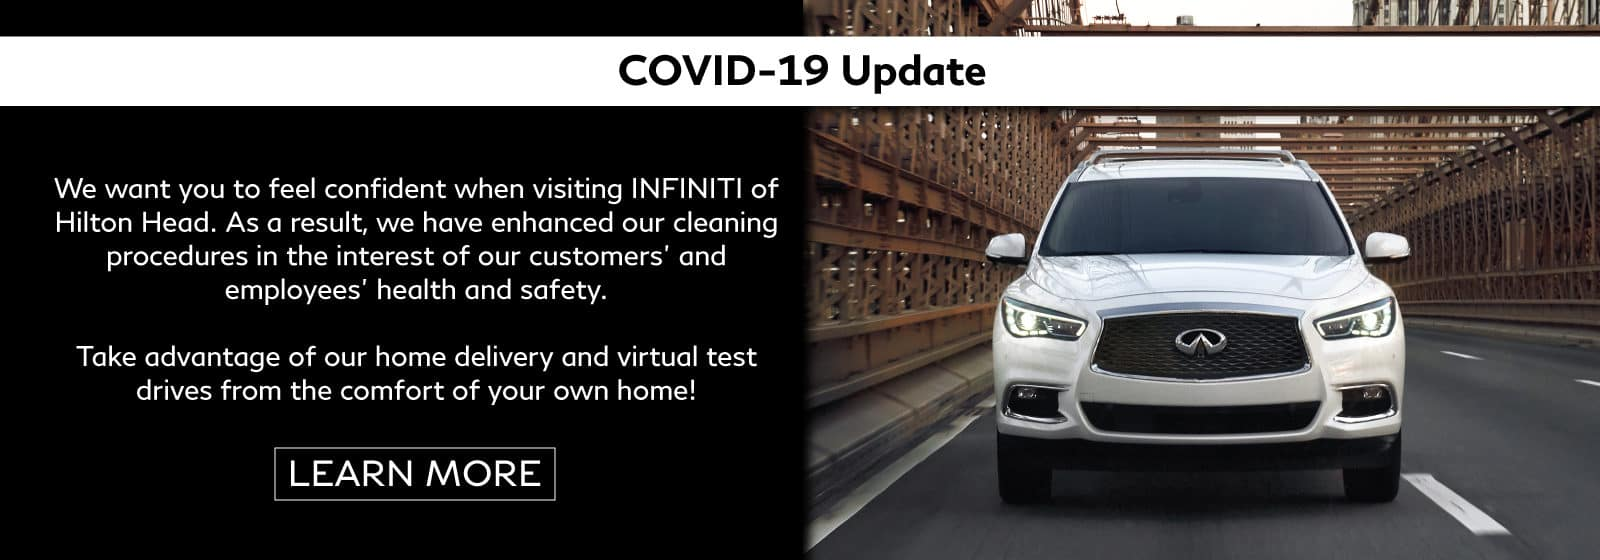 Covid-19 Update from INFINITI of Hilton Head